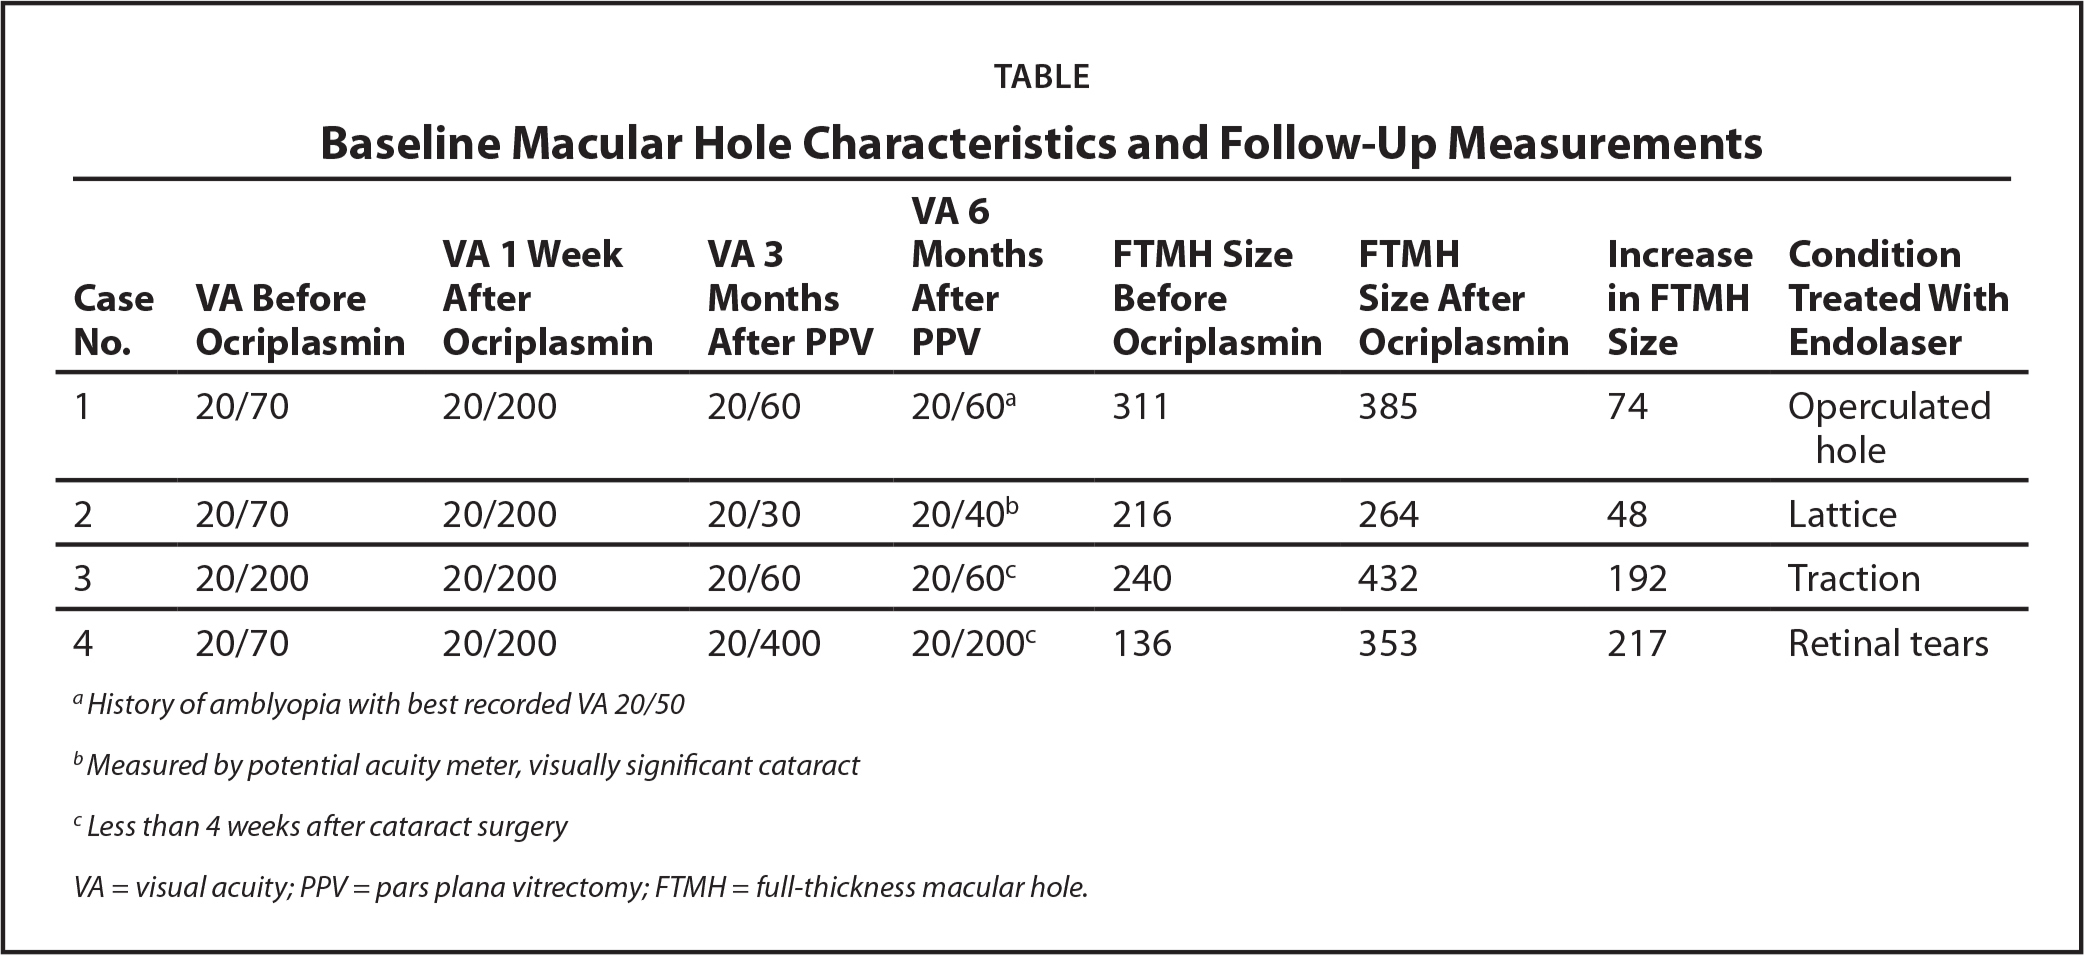 Baseline Macular Hole Characteristics and Follow-Up Measurements